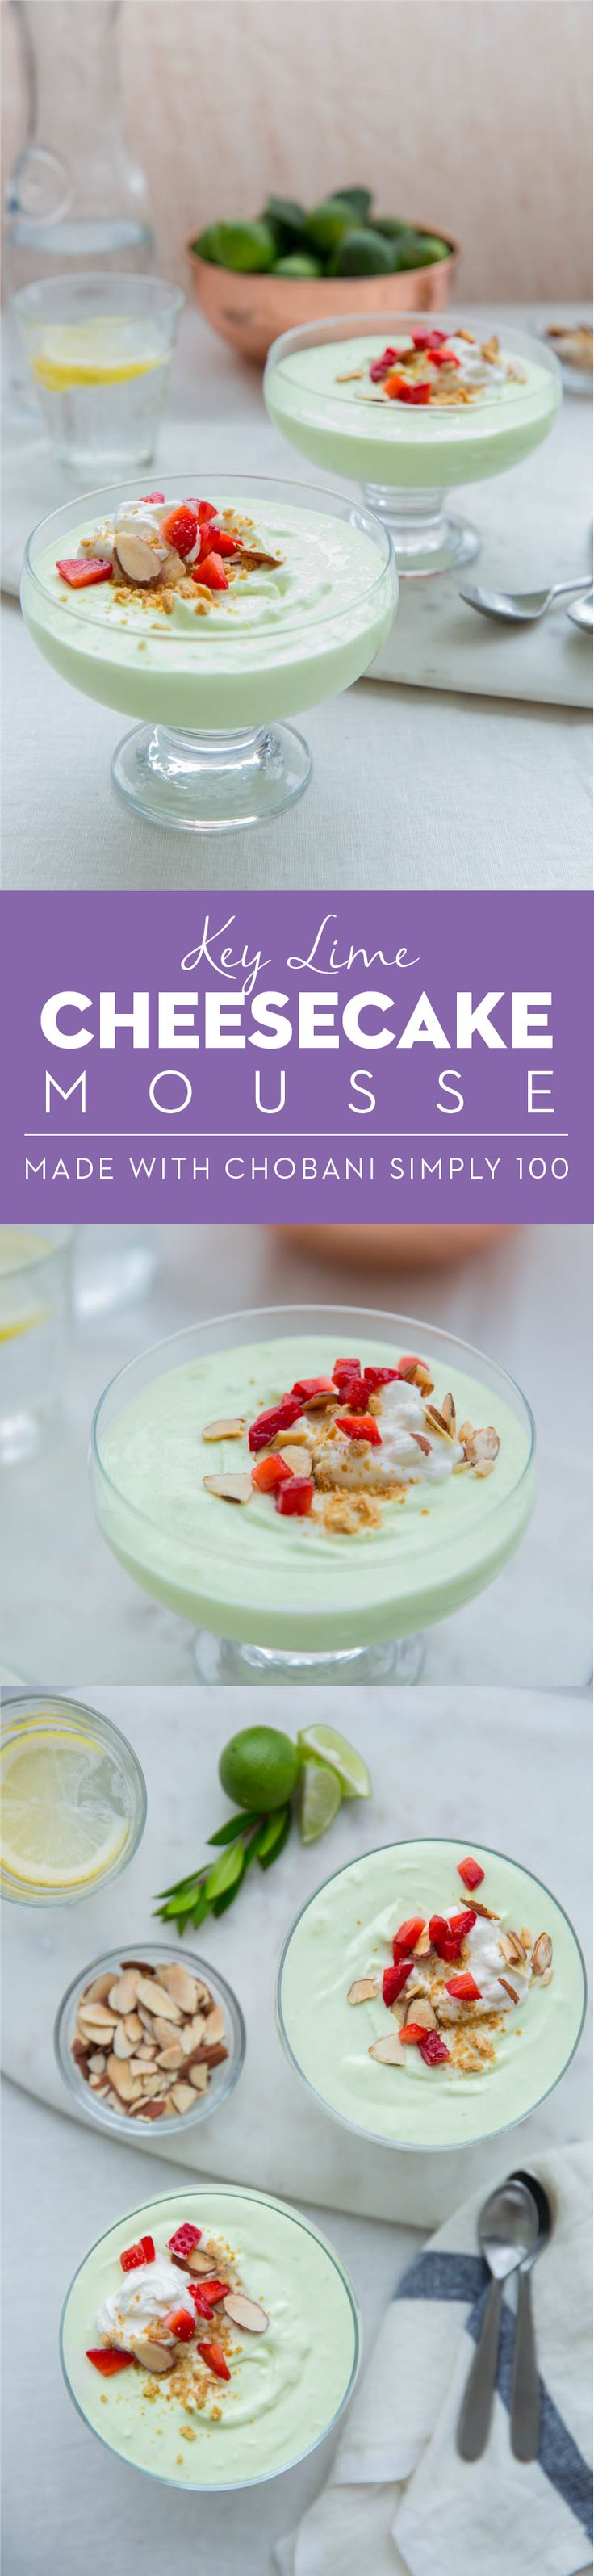 Chobani Simply 100 makes dessert just as delicious and a little less decadent! Whip up this Key Lime Cheesecake Mousse and please the party!